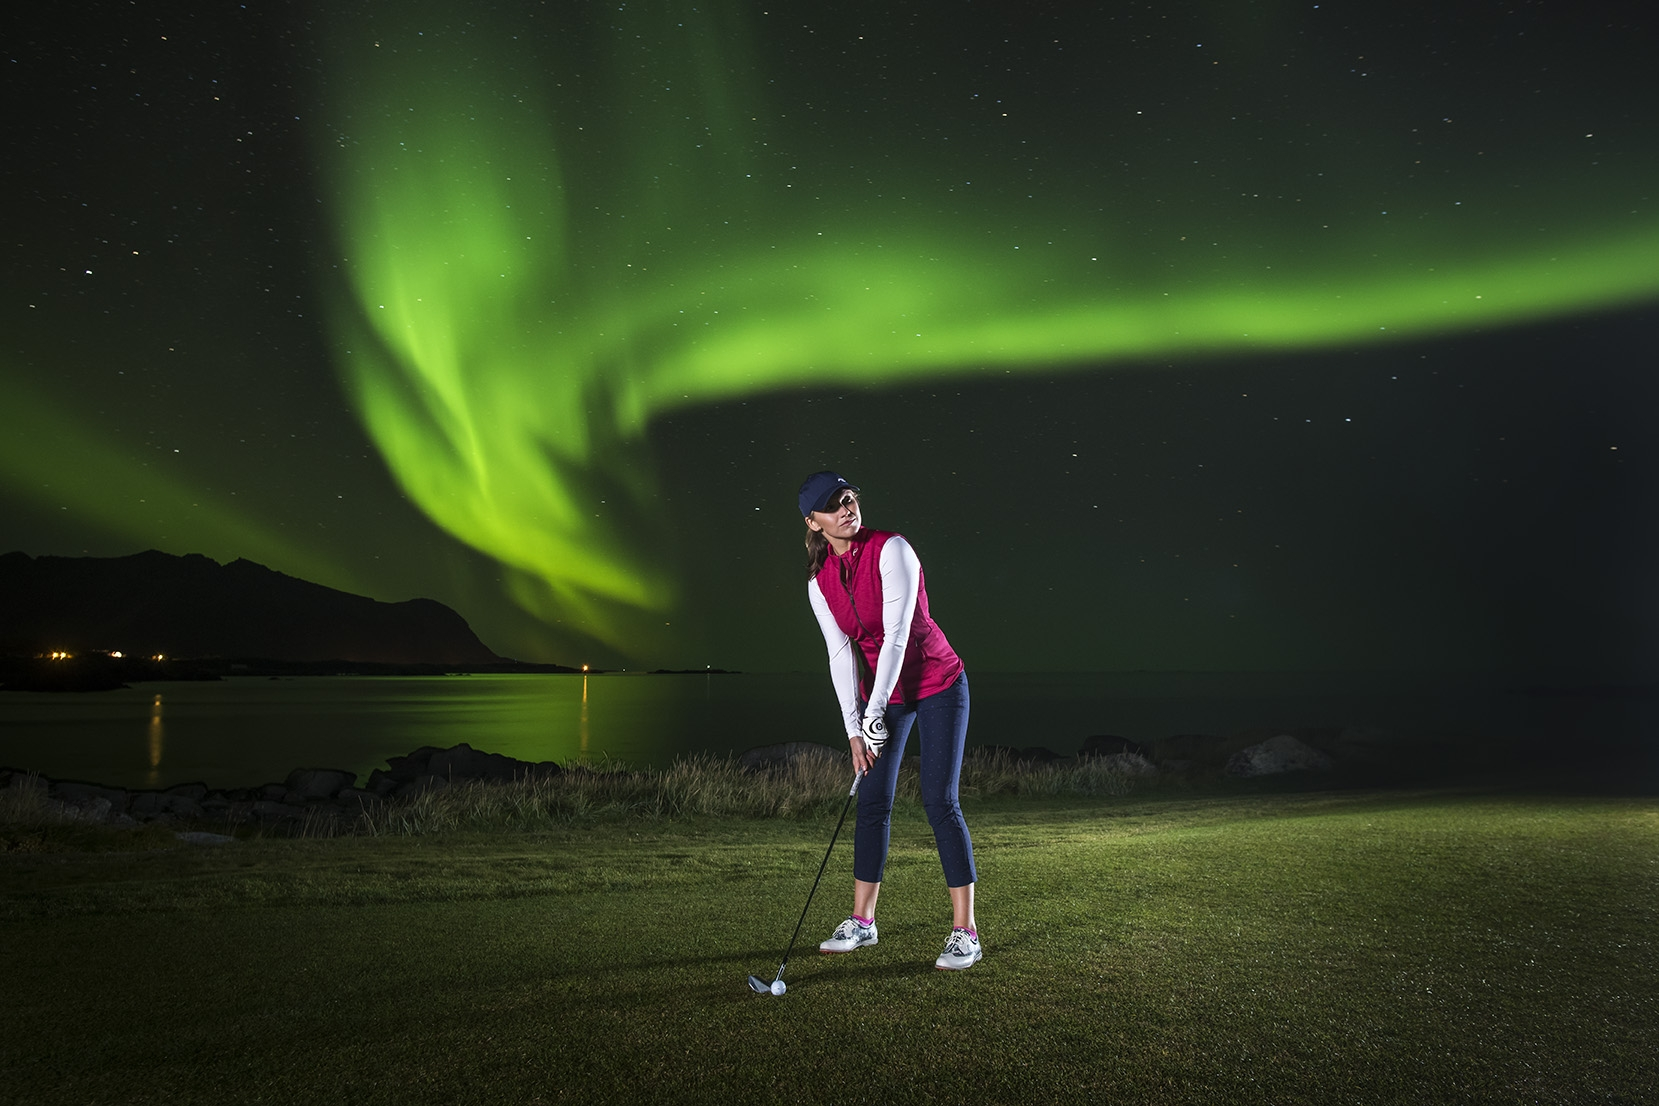 In Pursuit of Magic: Golf Under the Northern Lights